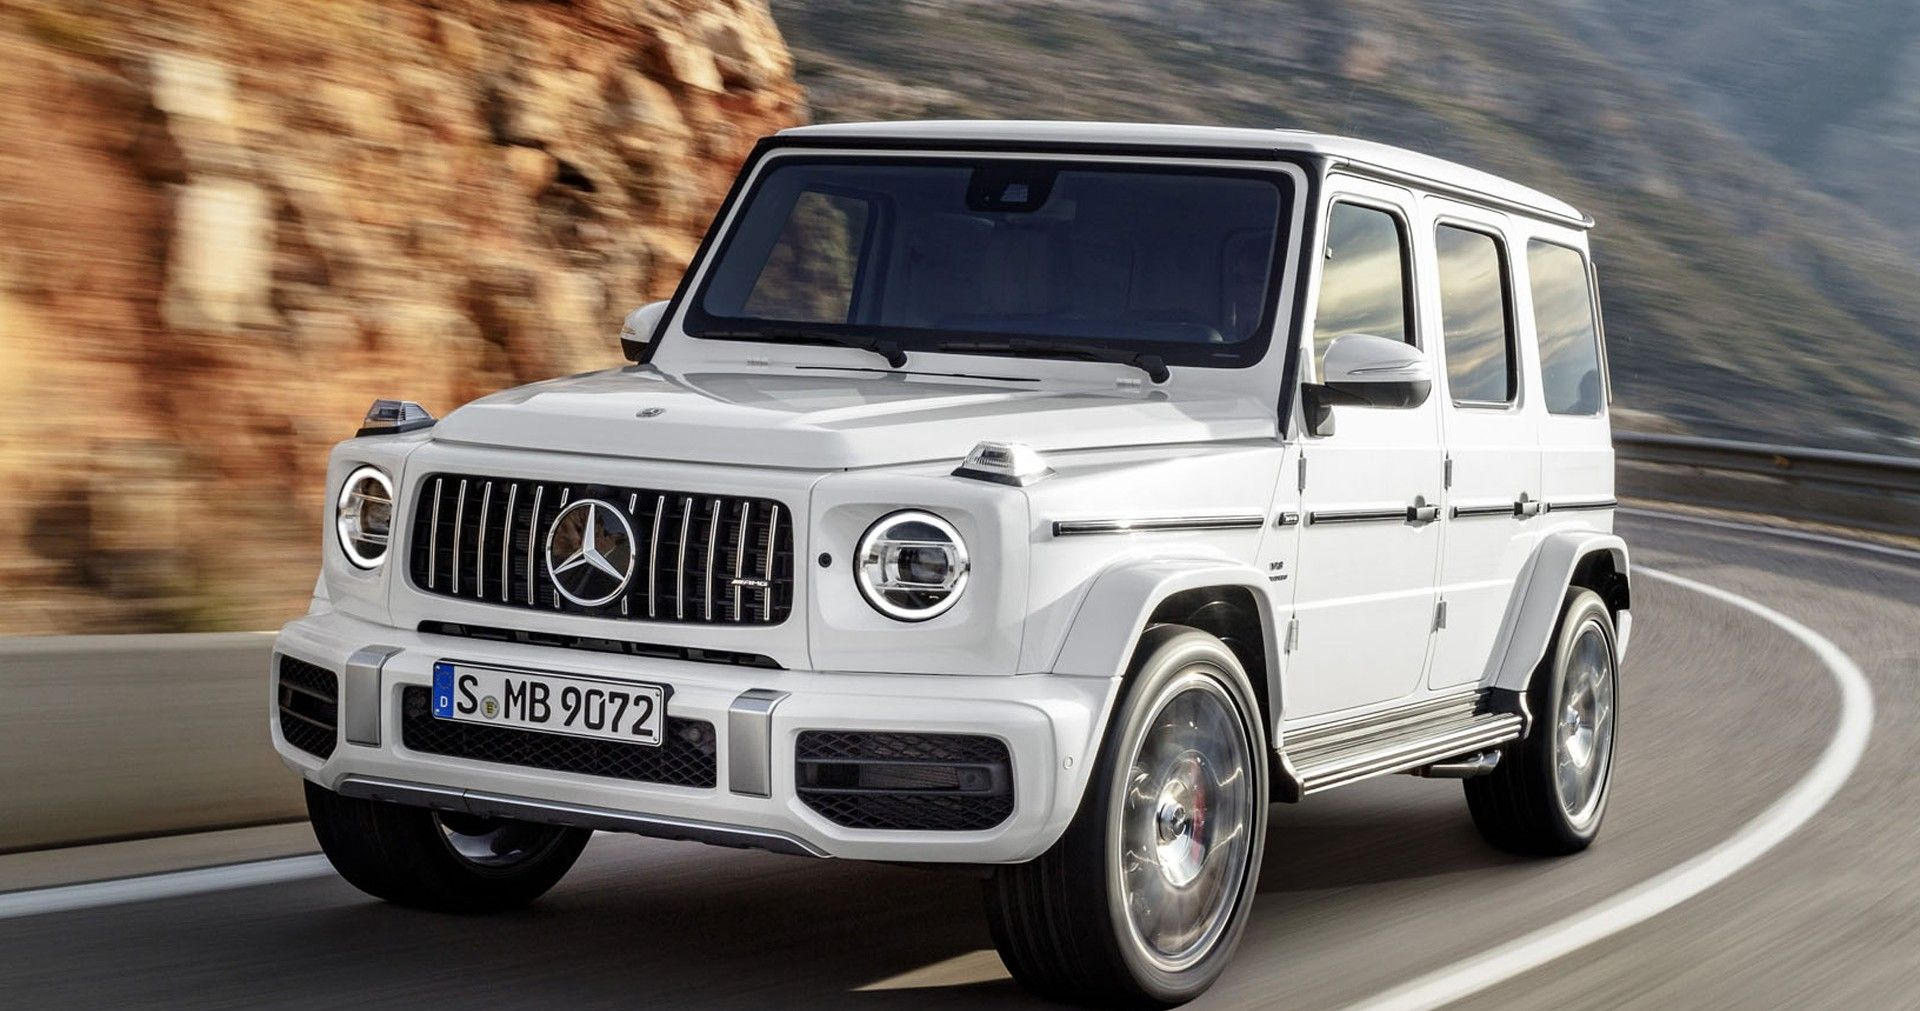 Detailed Look At The Mercedes Benz G Class From Post Malone's Song White Iverson